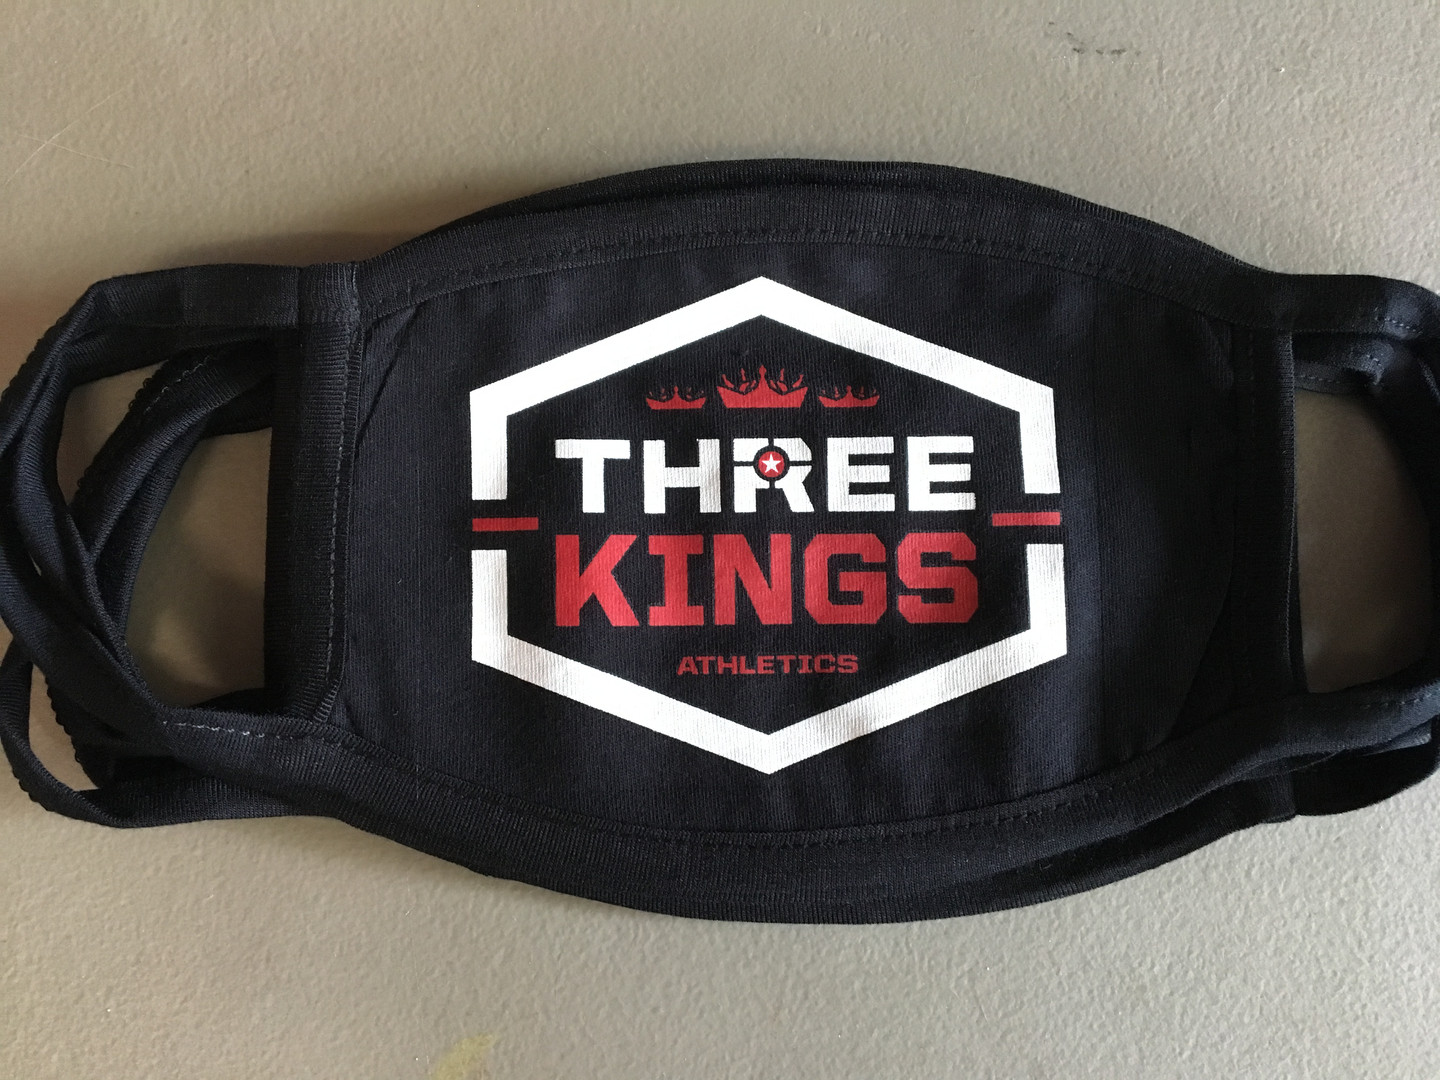 Three Kings Athletics